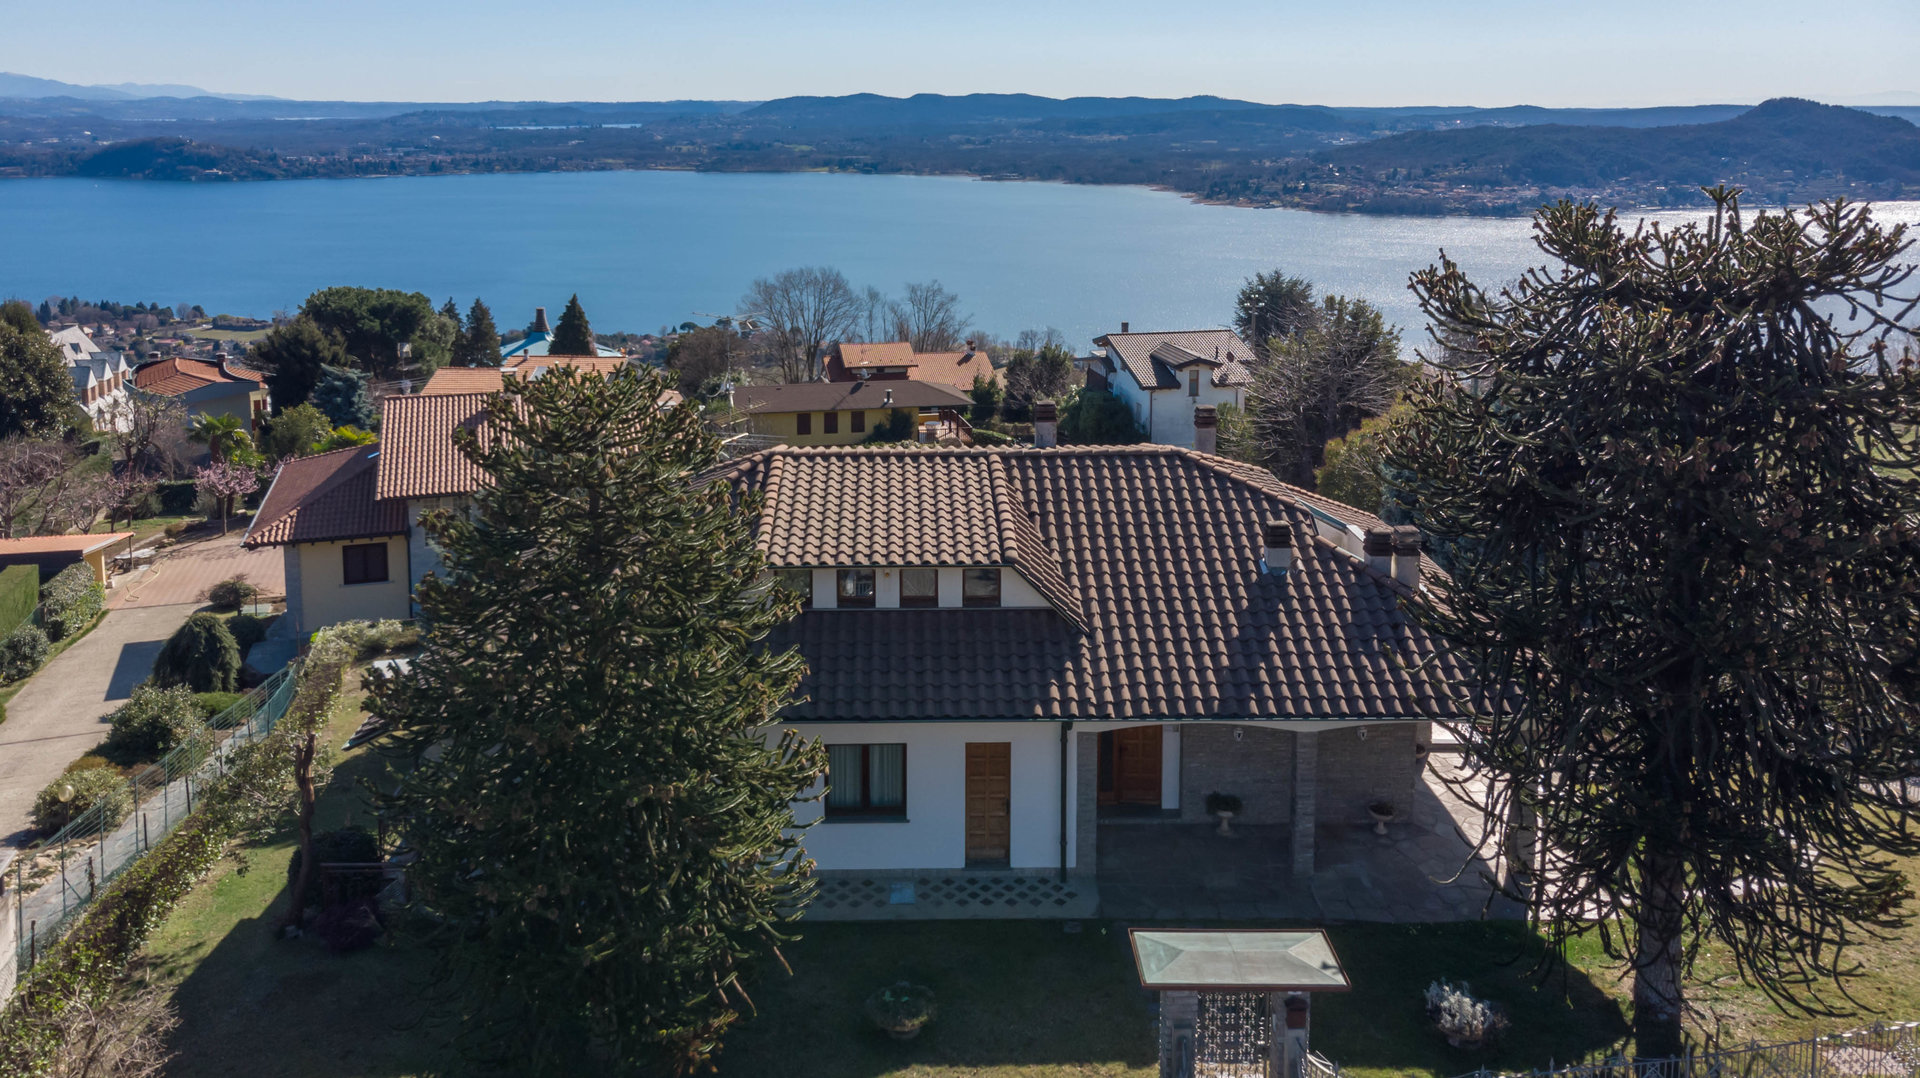 Villa for sale in Massino Visconti with a wonderful view of the lake